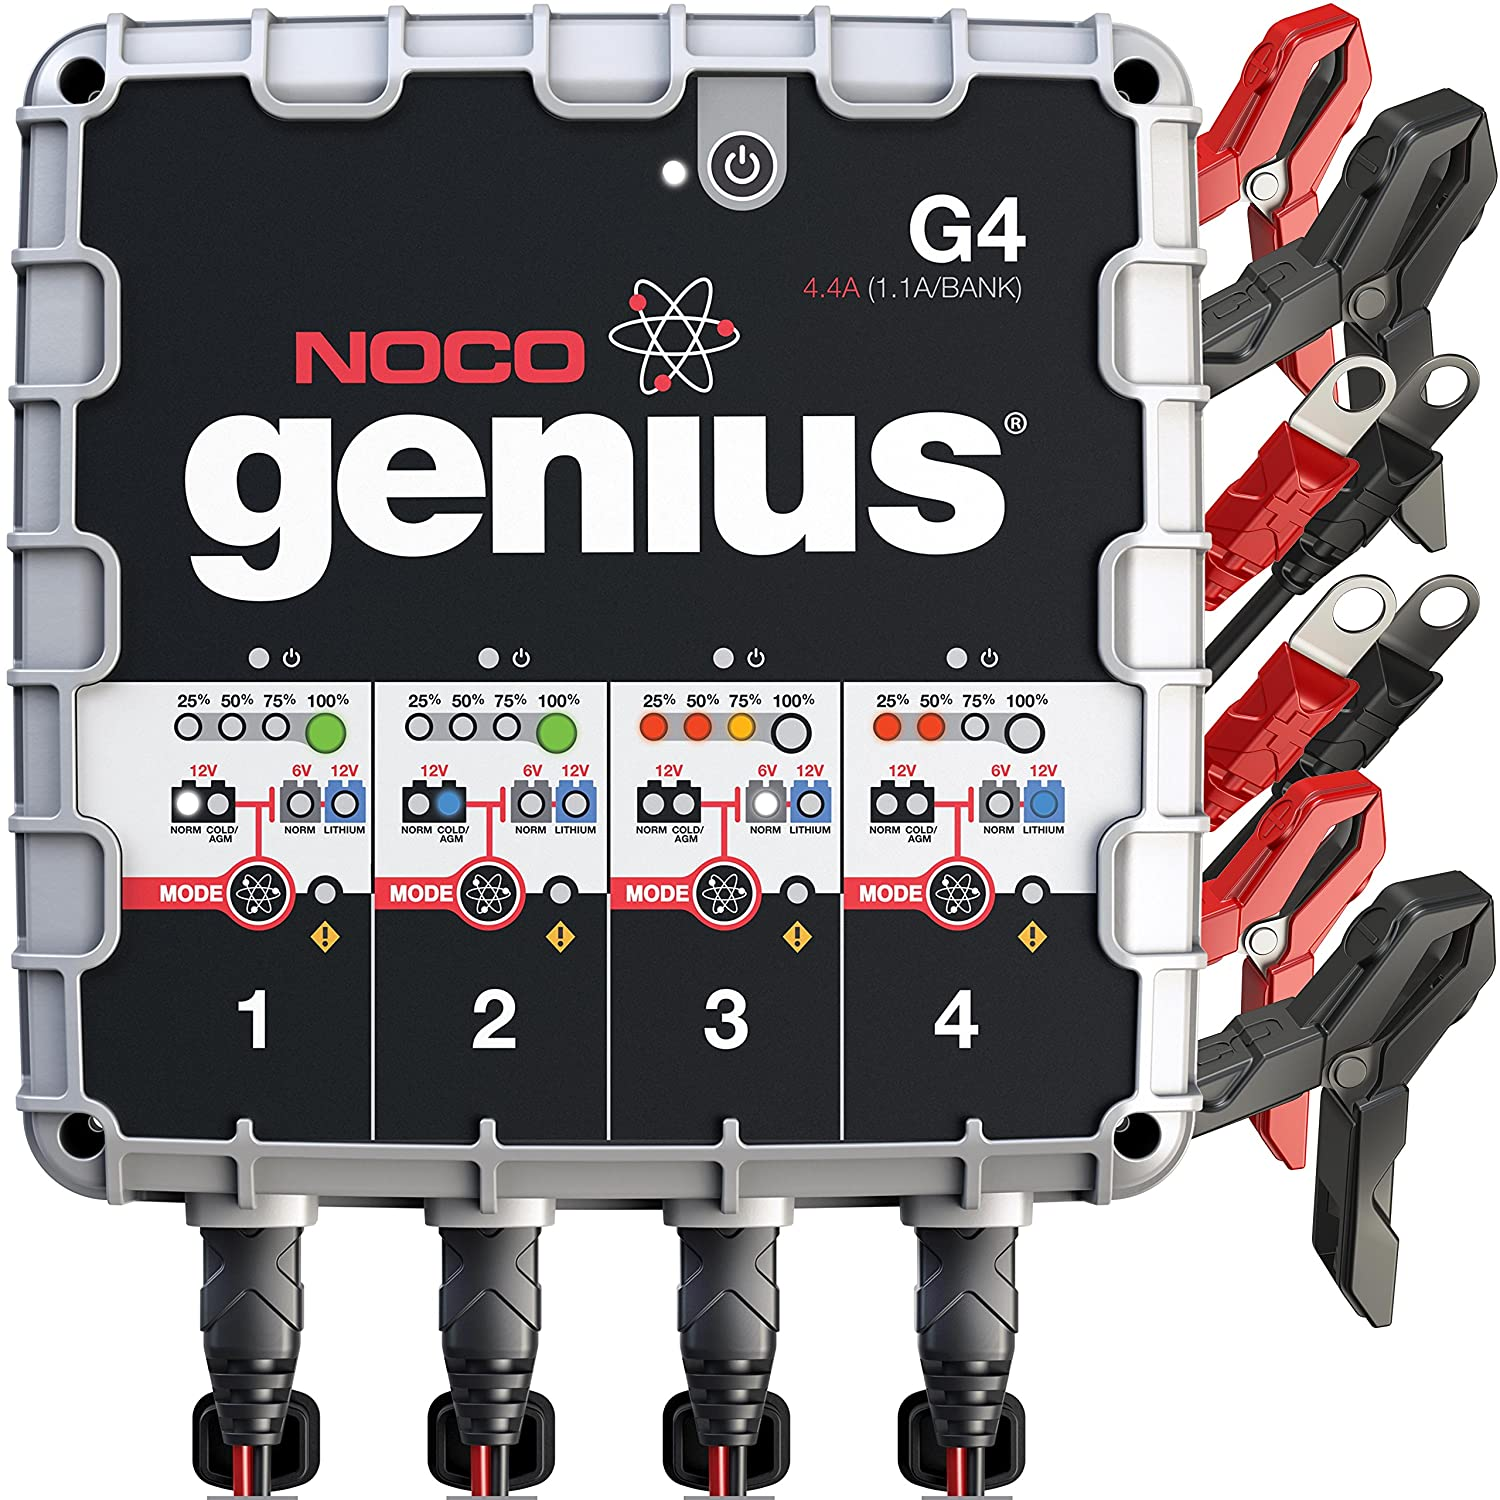 NOCO Genius G4  review